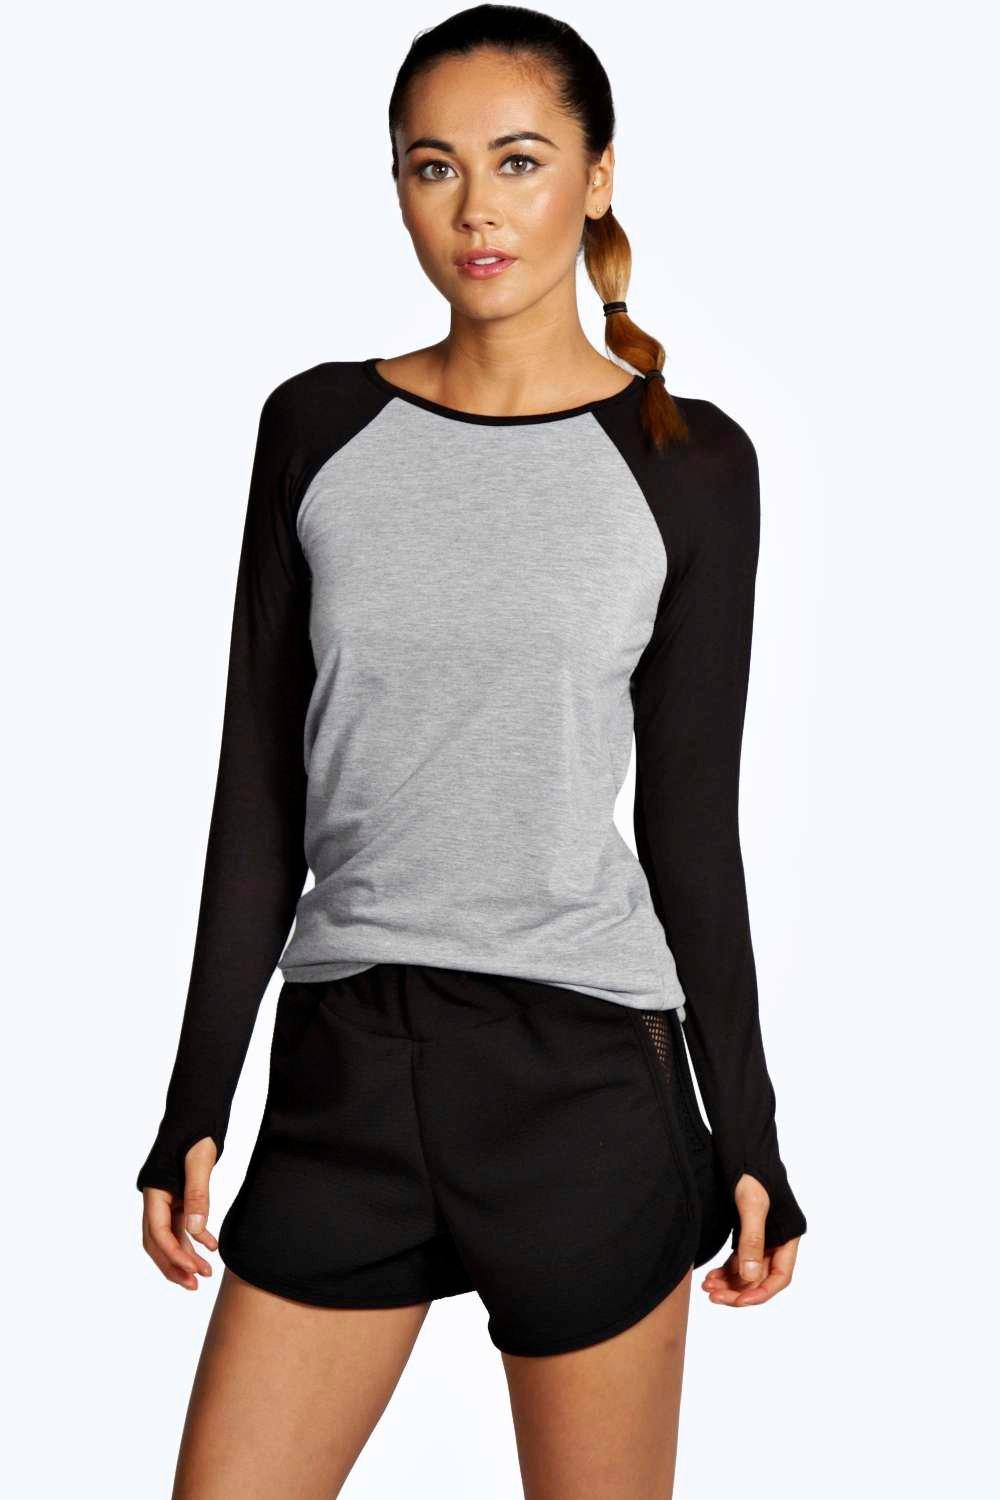 Snapdeal brings to you an array of sweatshirts for women that will cater to your needs of keeping warm without compromising on style. Shop Online for Ladies Sweatshirts at Snapdeal Sweatshirts are extremely popular with women as it blends comfort with a casual and sporty look.